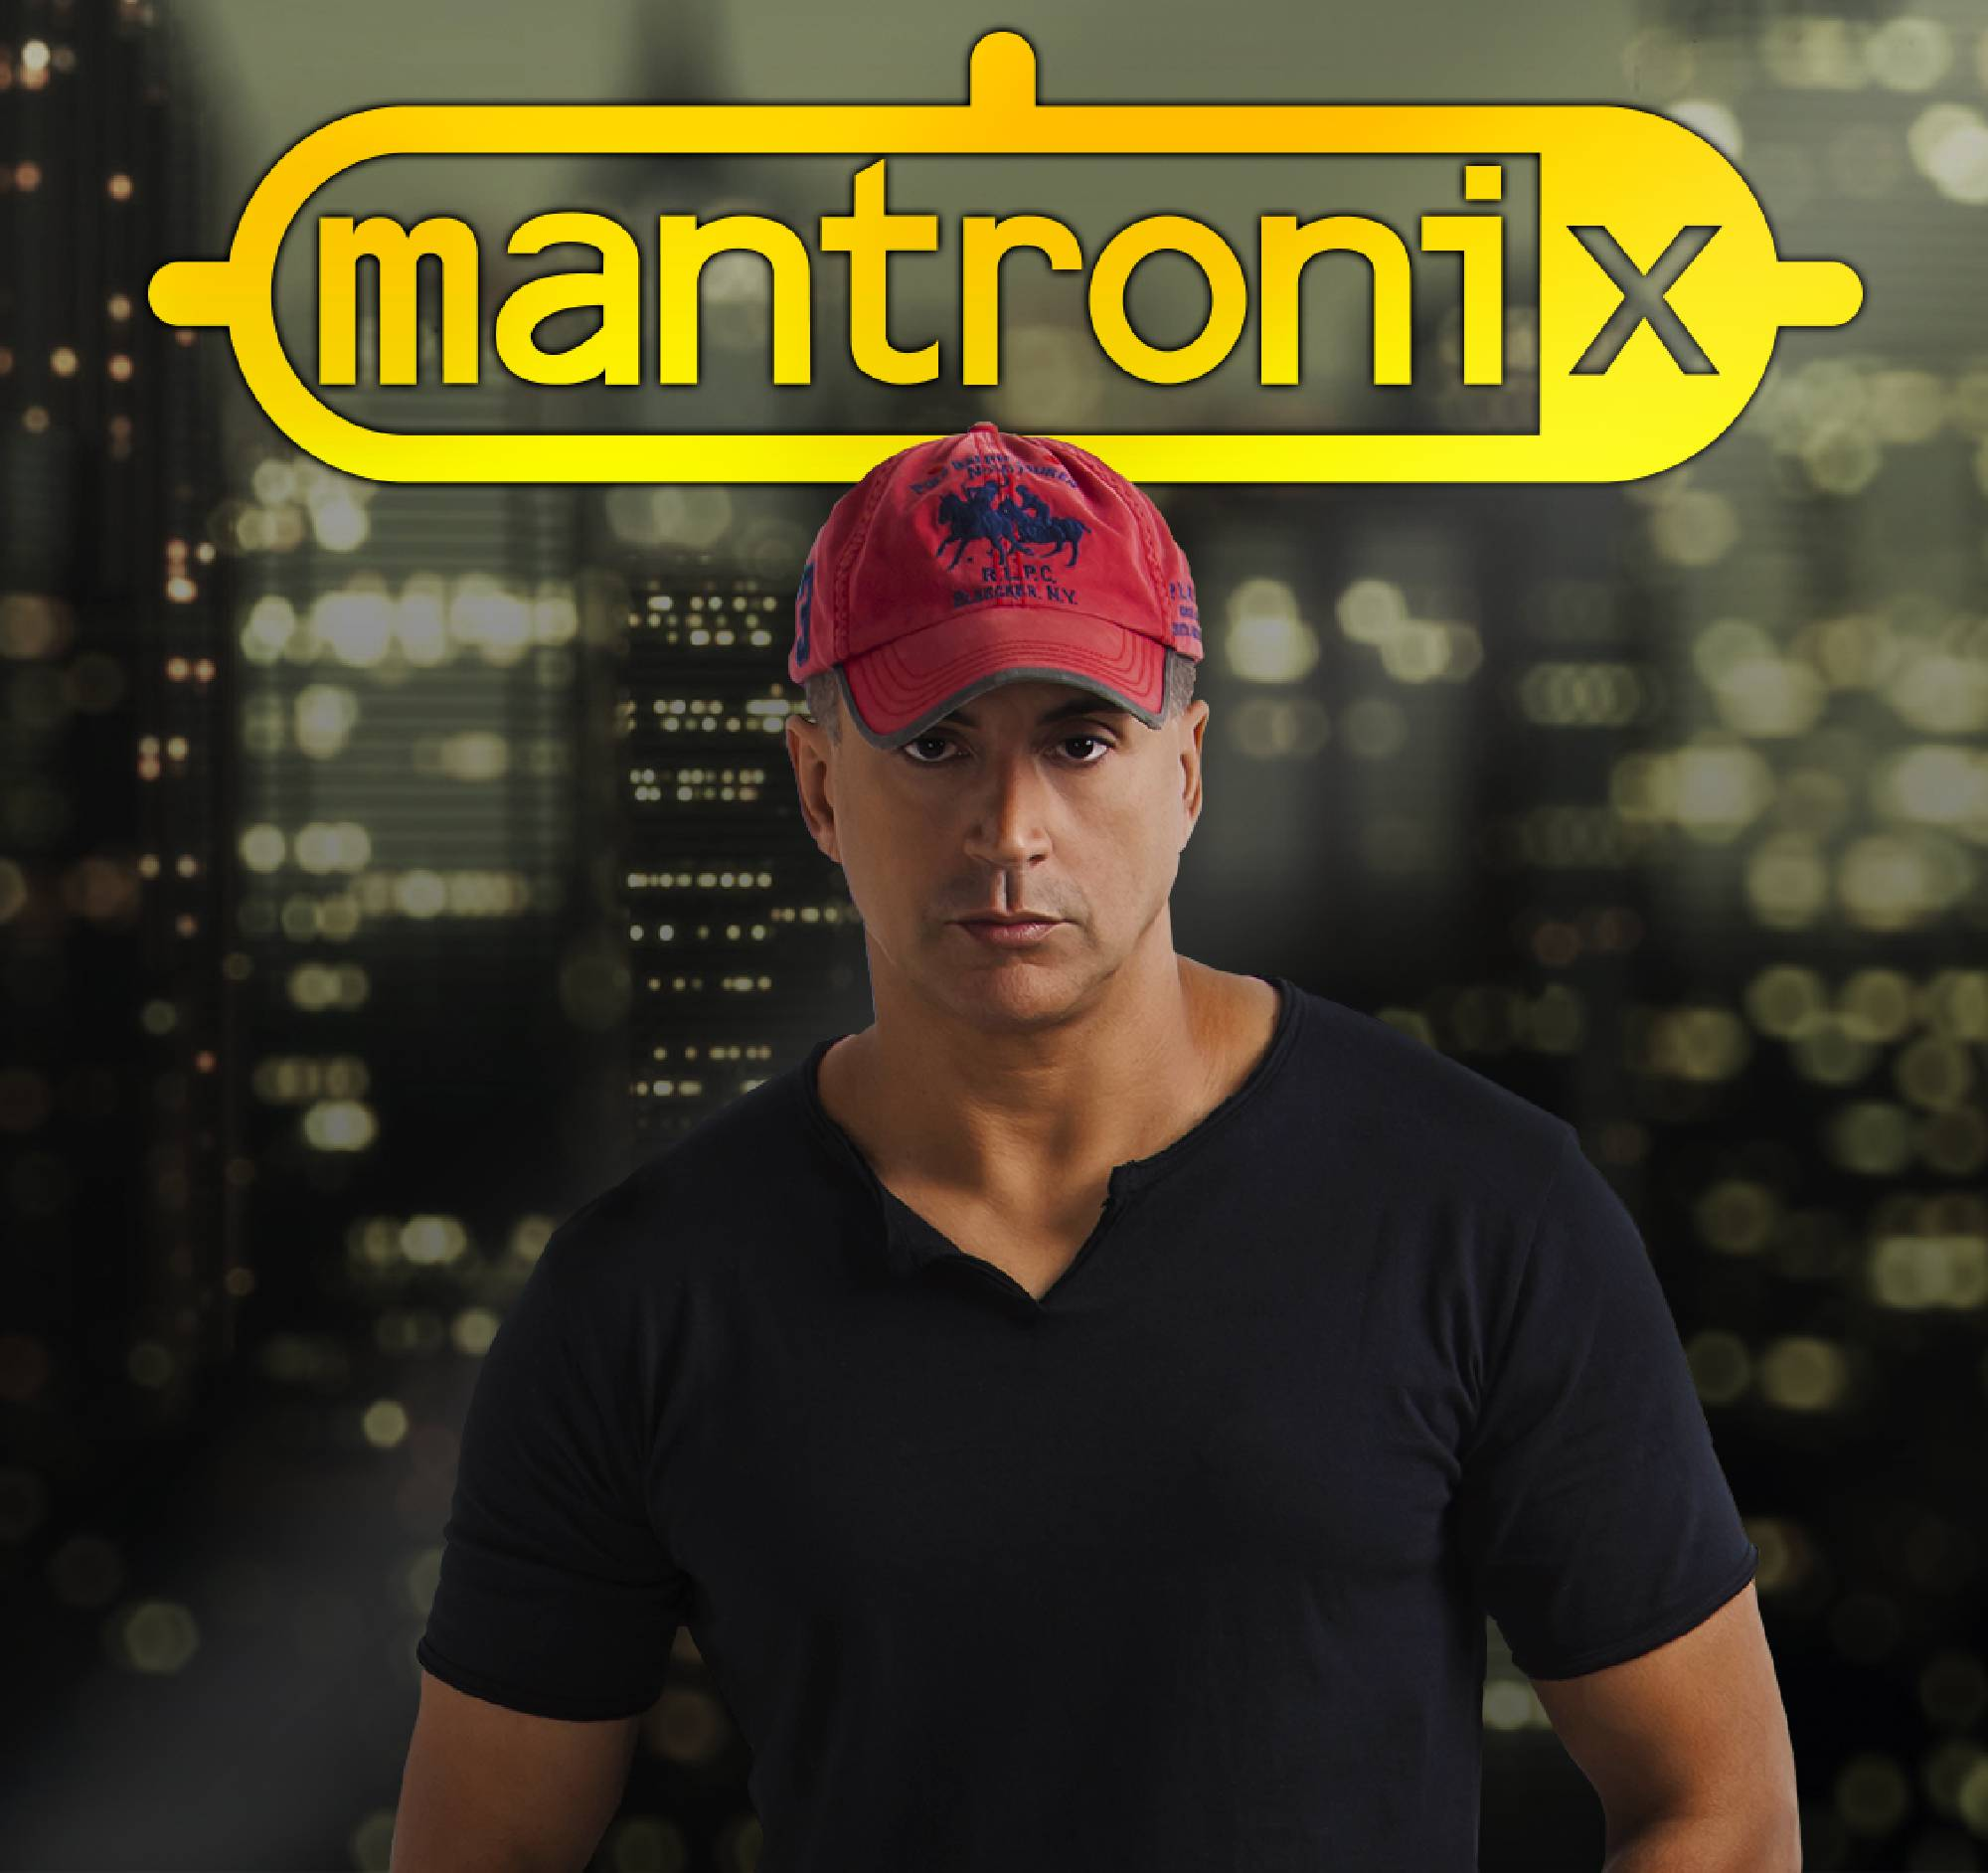 mantronix-final-2000x1884